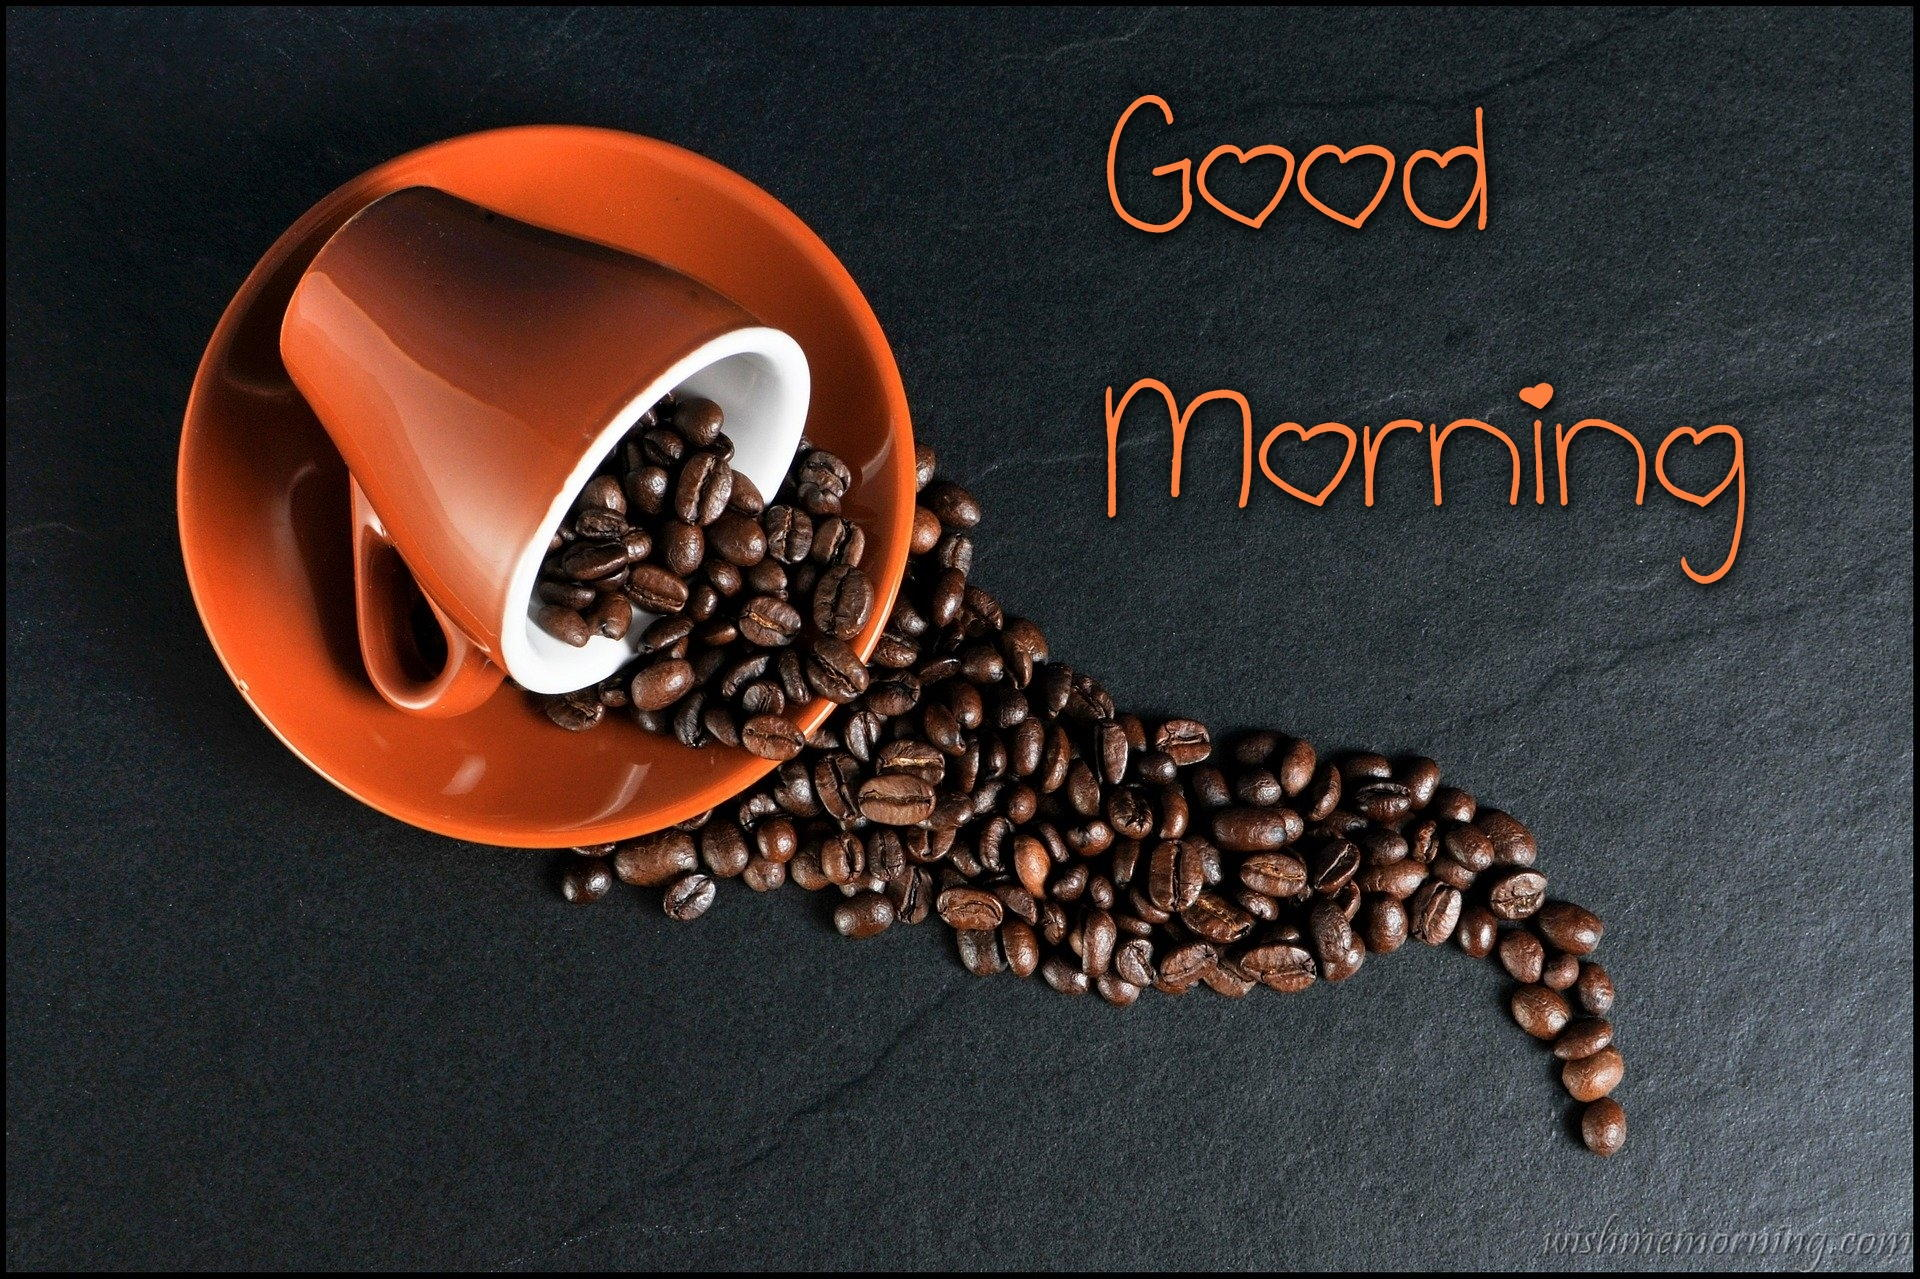 Orange Color Cup Filled With Coffee Beans Good Morning